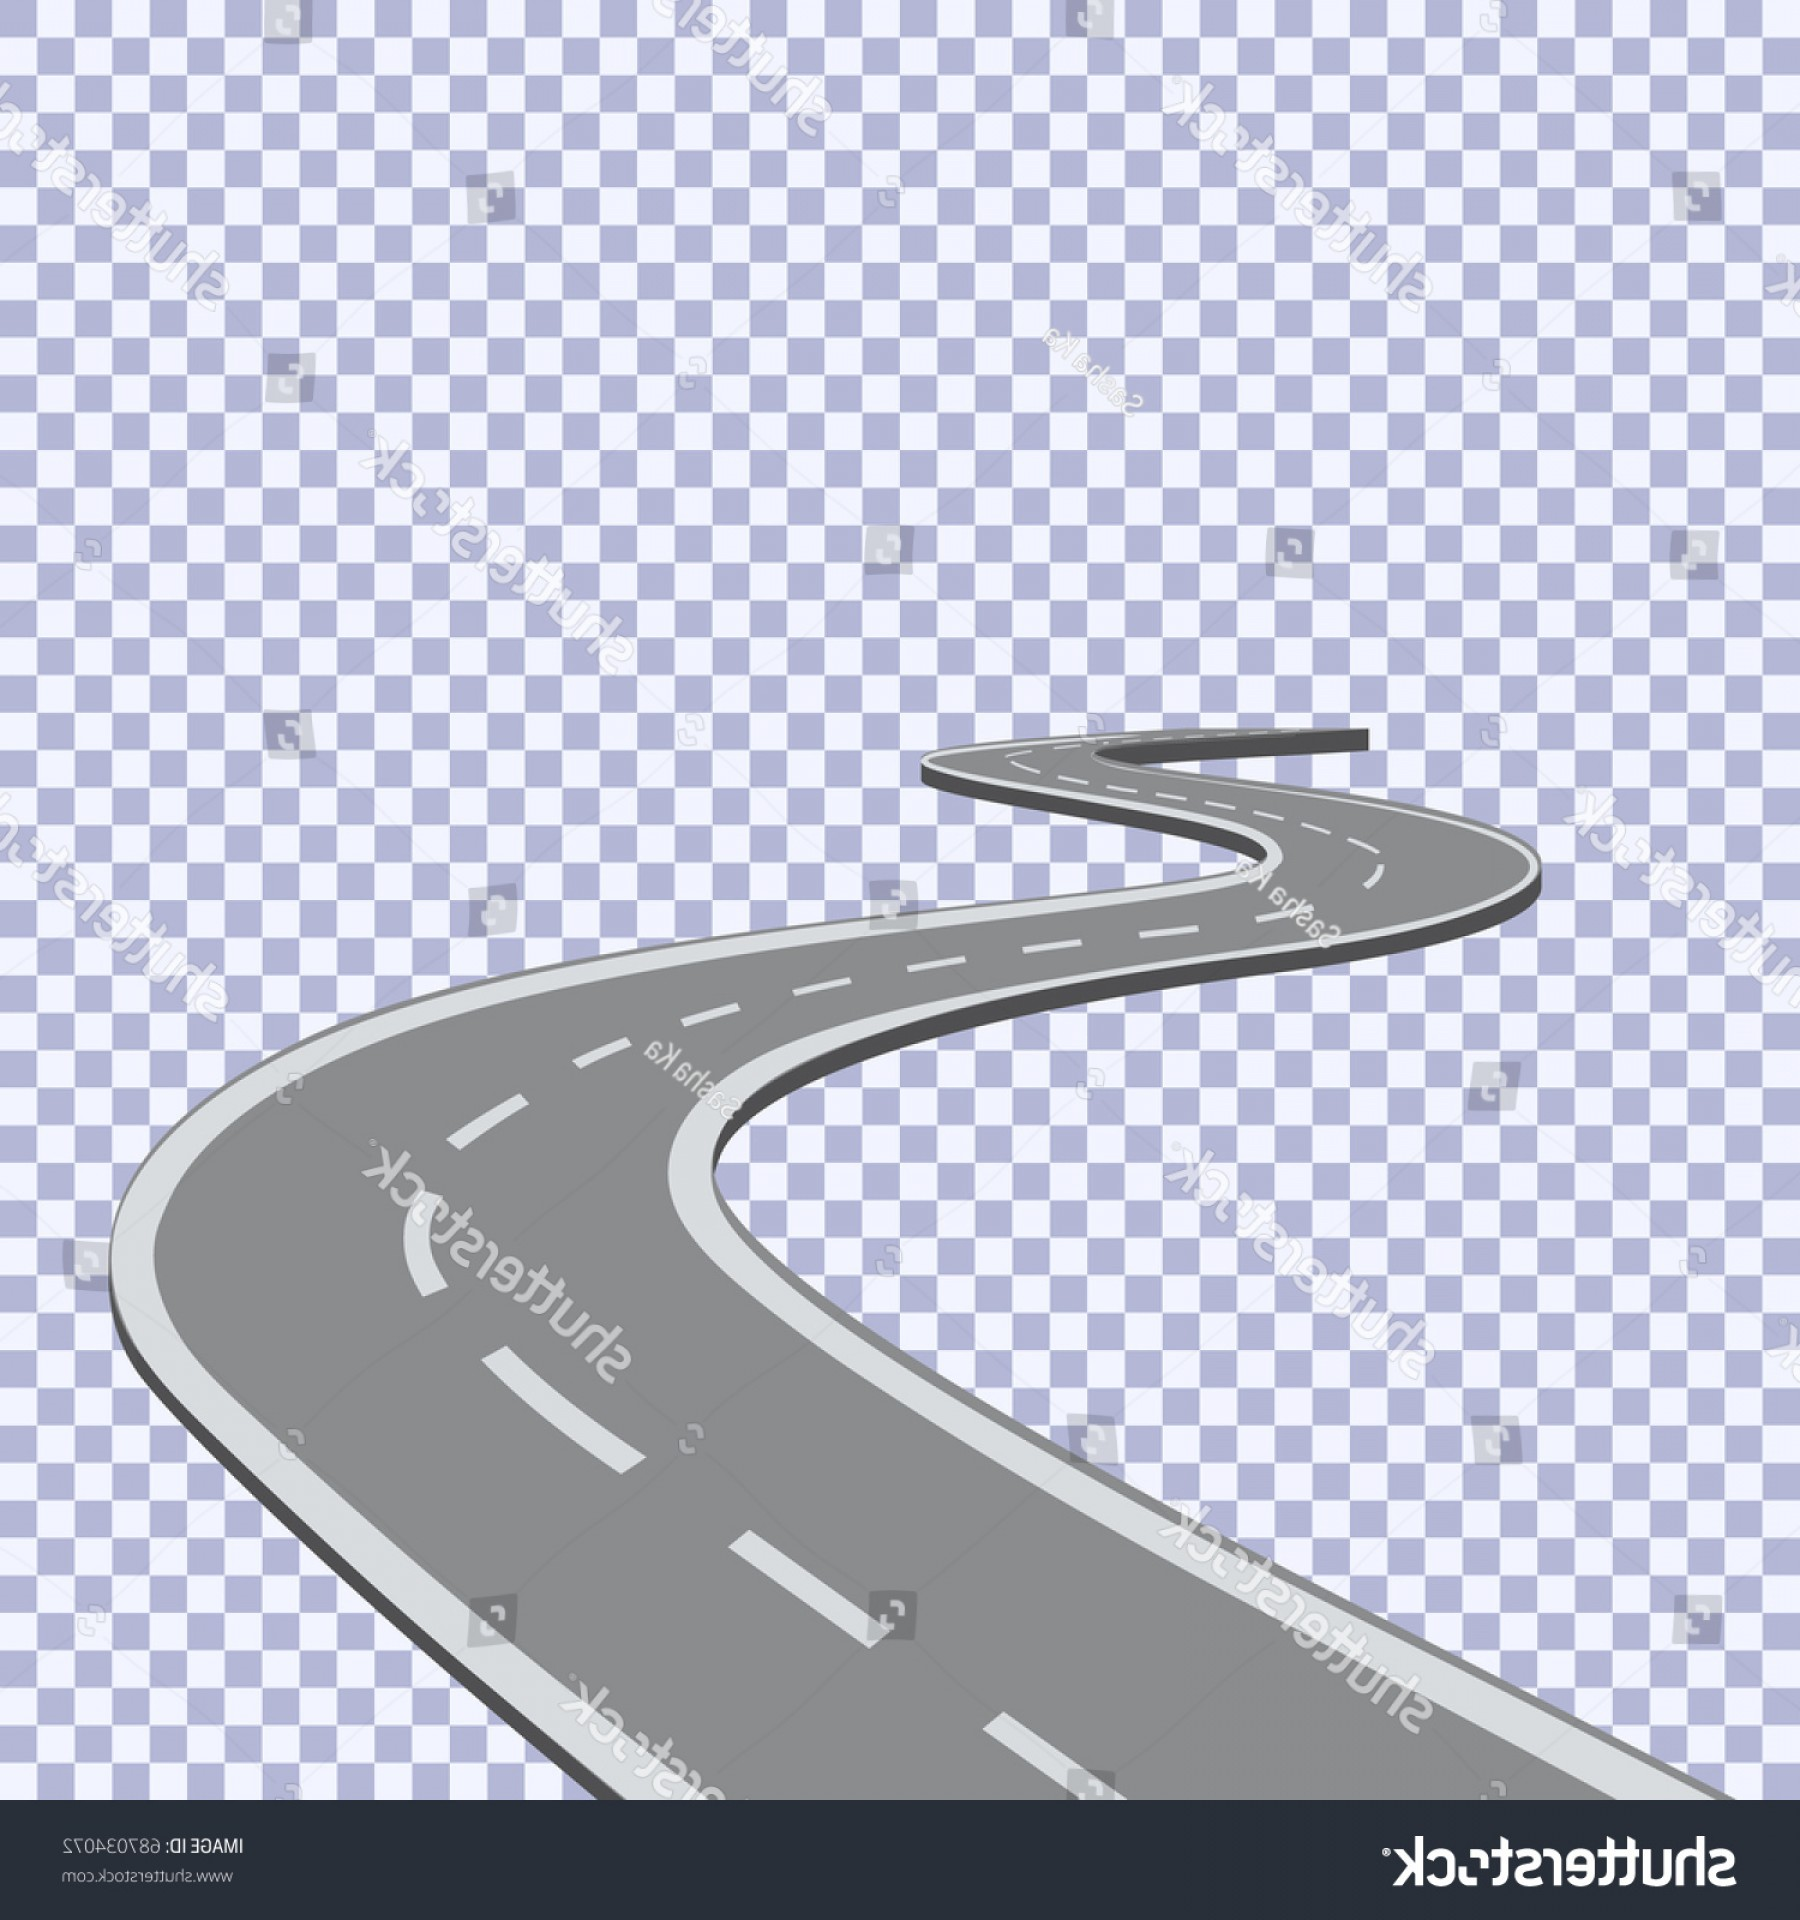 Transparent Curved Road Vector: Curved Road White Lines Black Vector